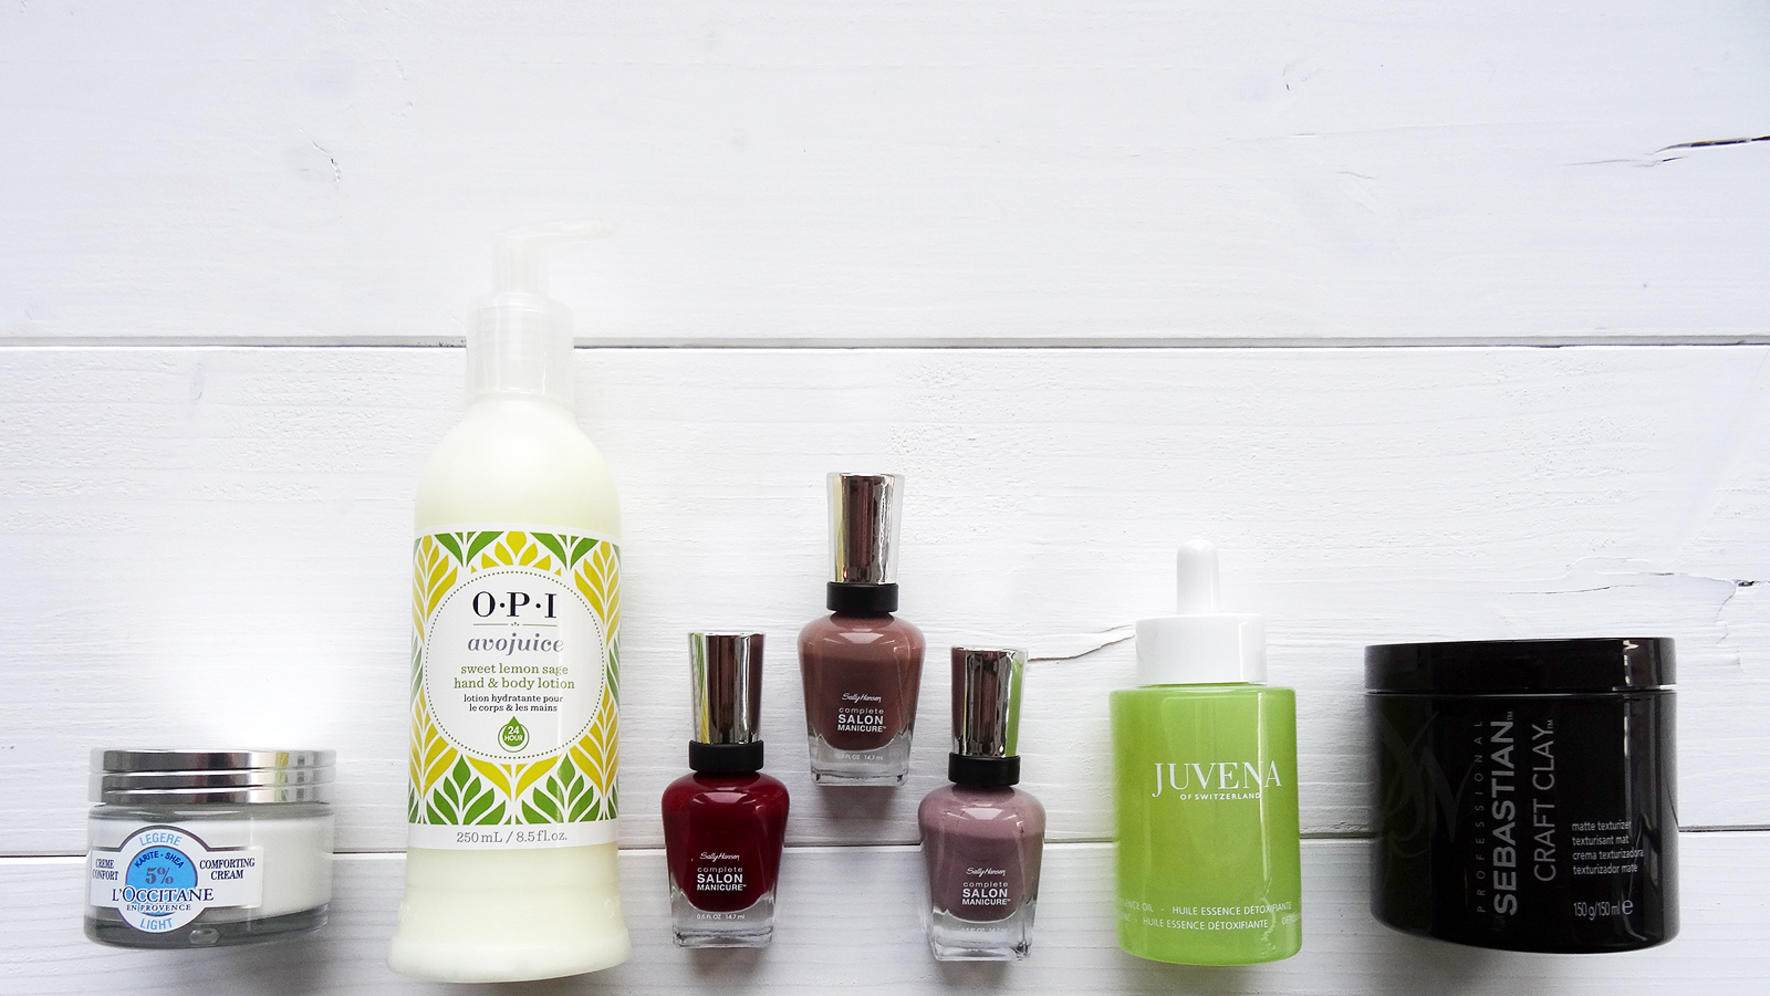 Beauty News L'Occitane OPI Sally Hansen Juvena Sebastian